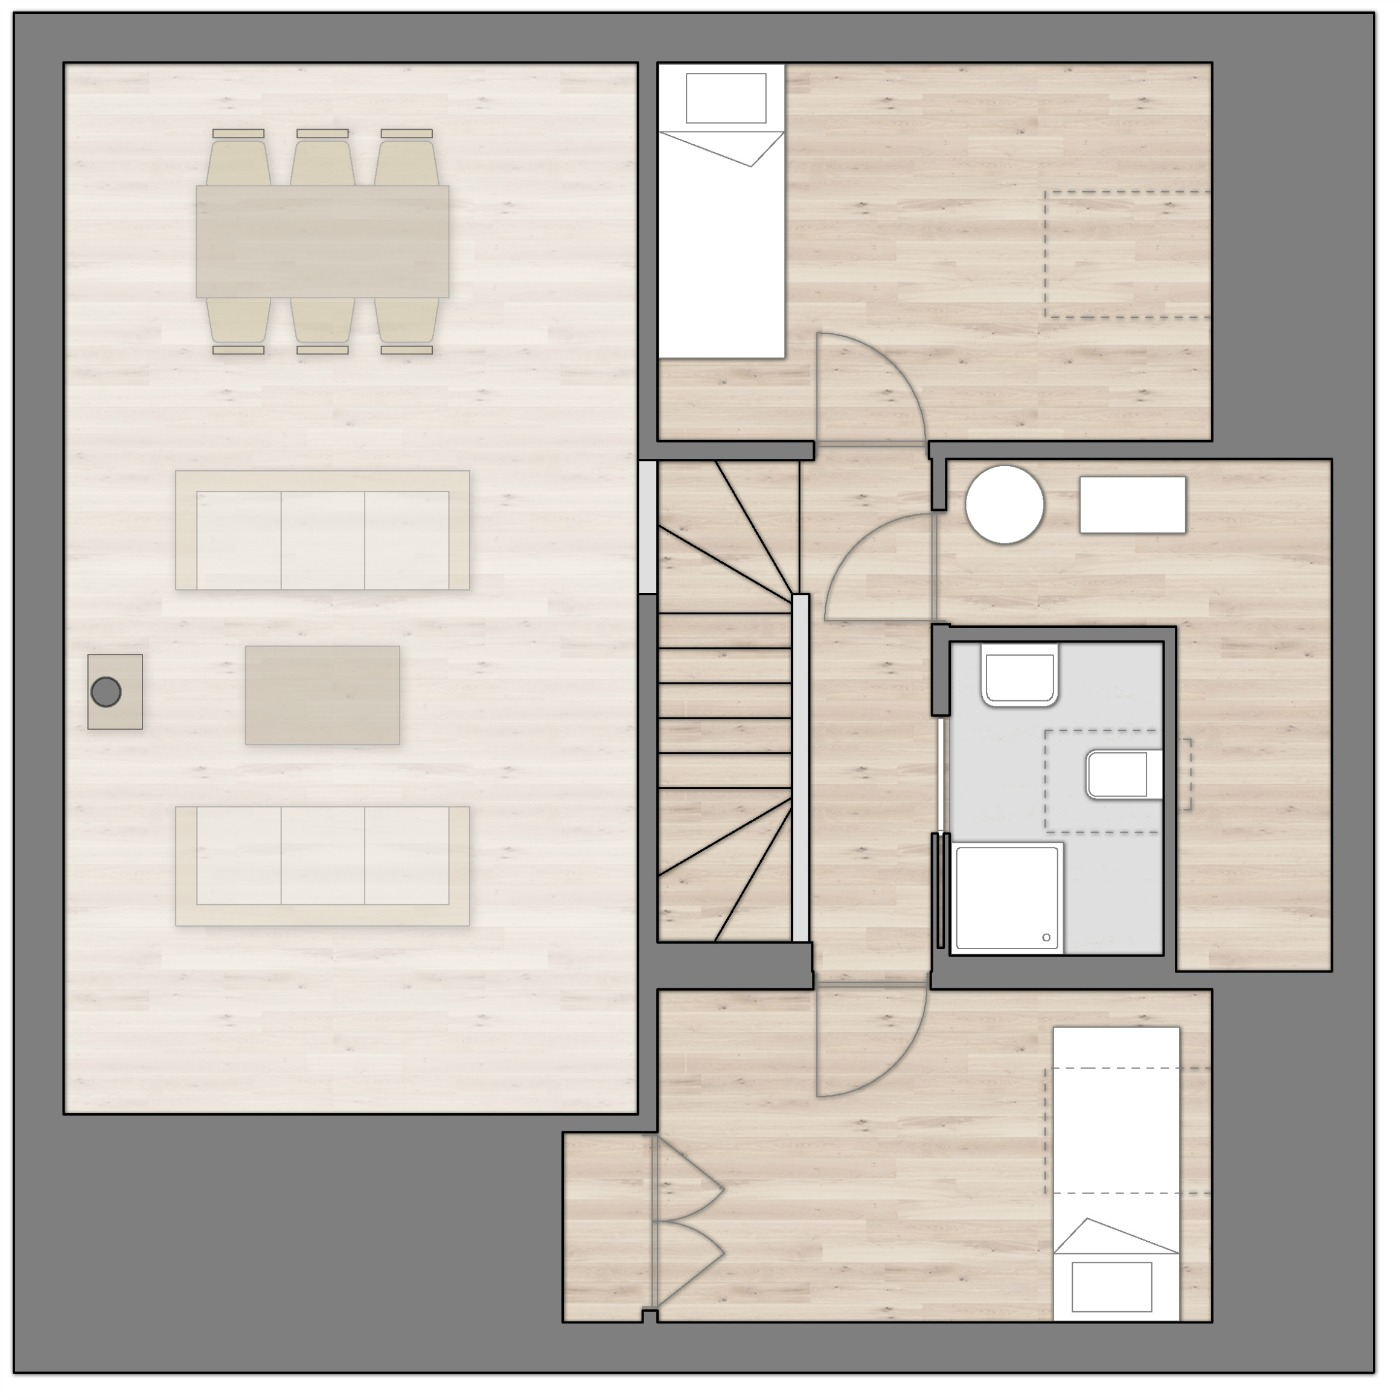 R.Island Home Floor Plan